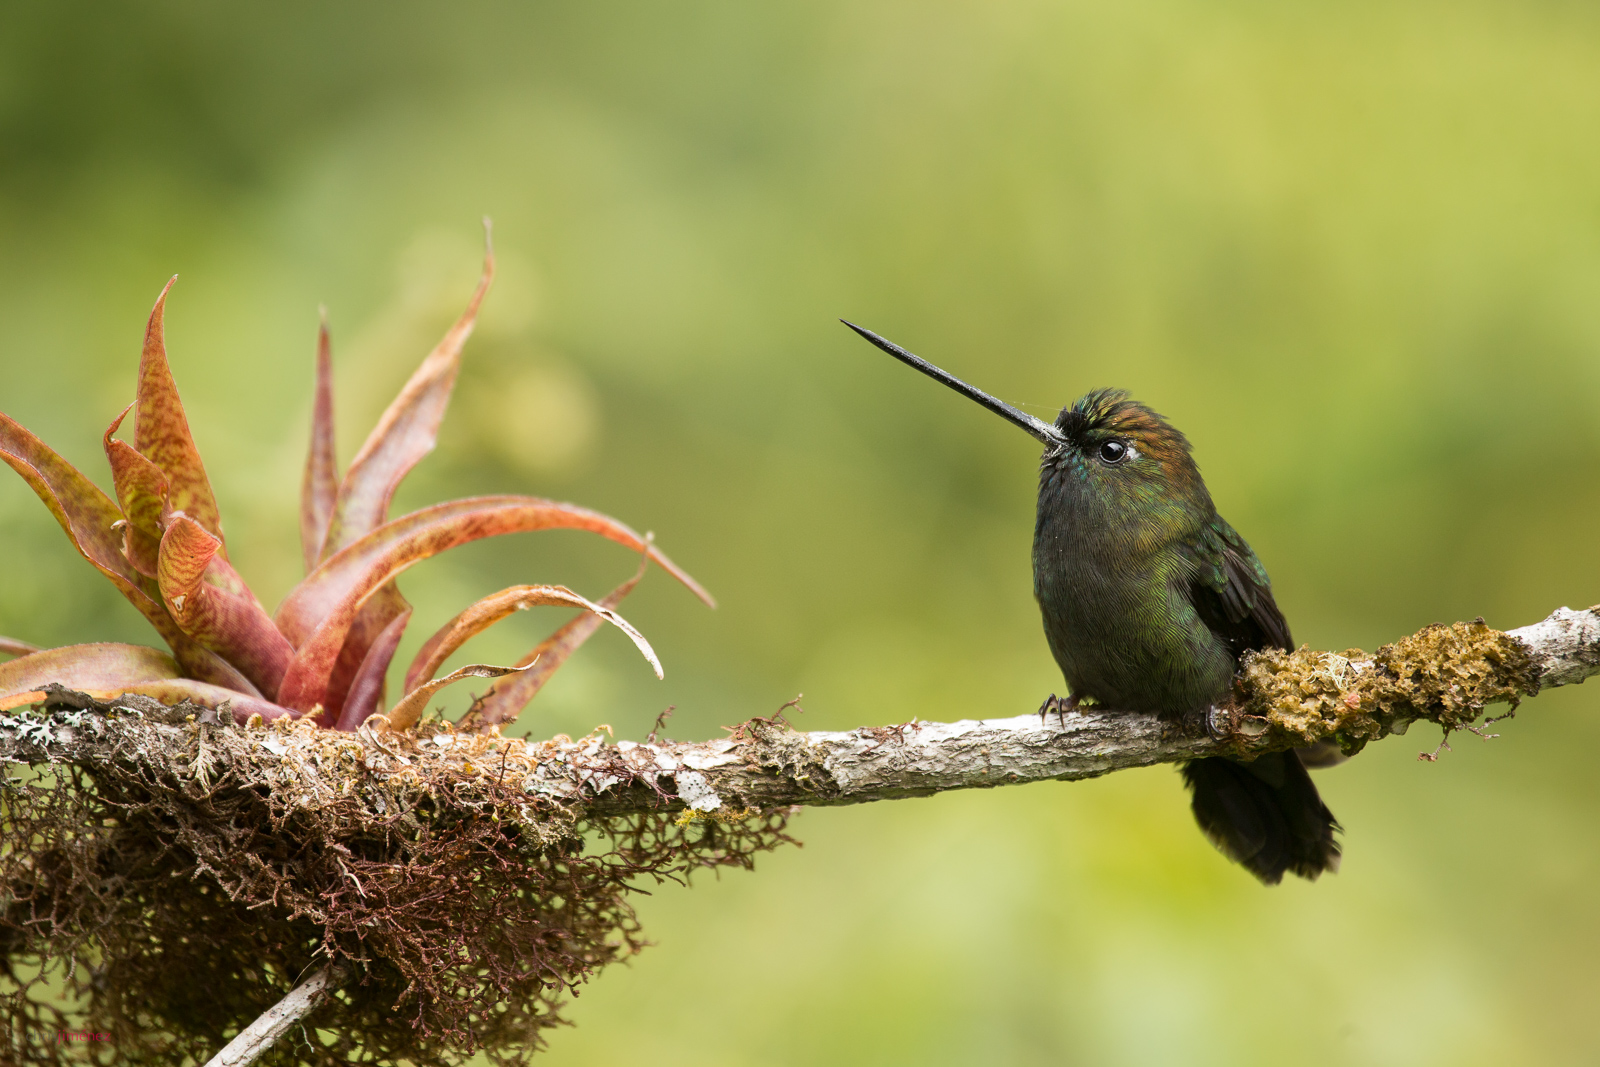 Green-fronted lancebill (Doryfera ludovicae) perched on a branch at the highlands of Costa Rica http://www.chrisjimenez.net